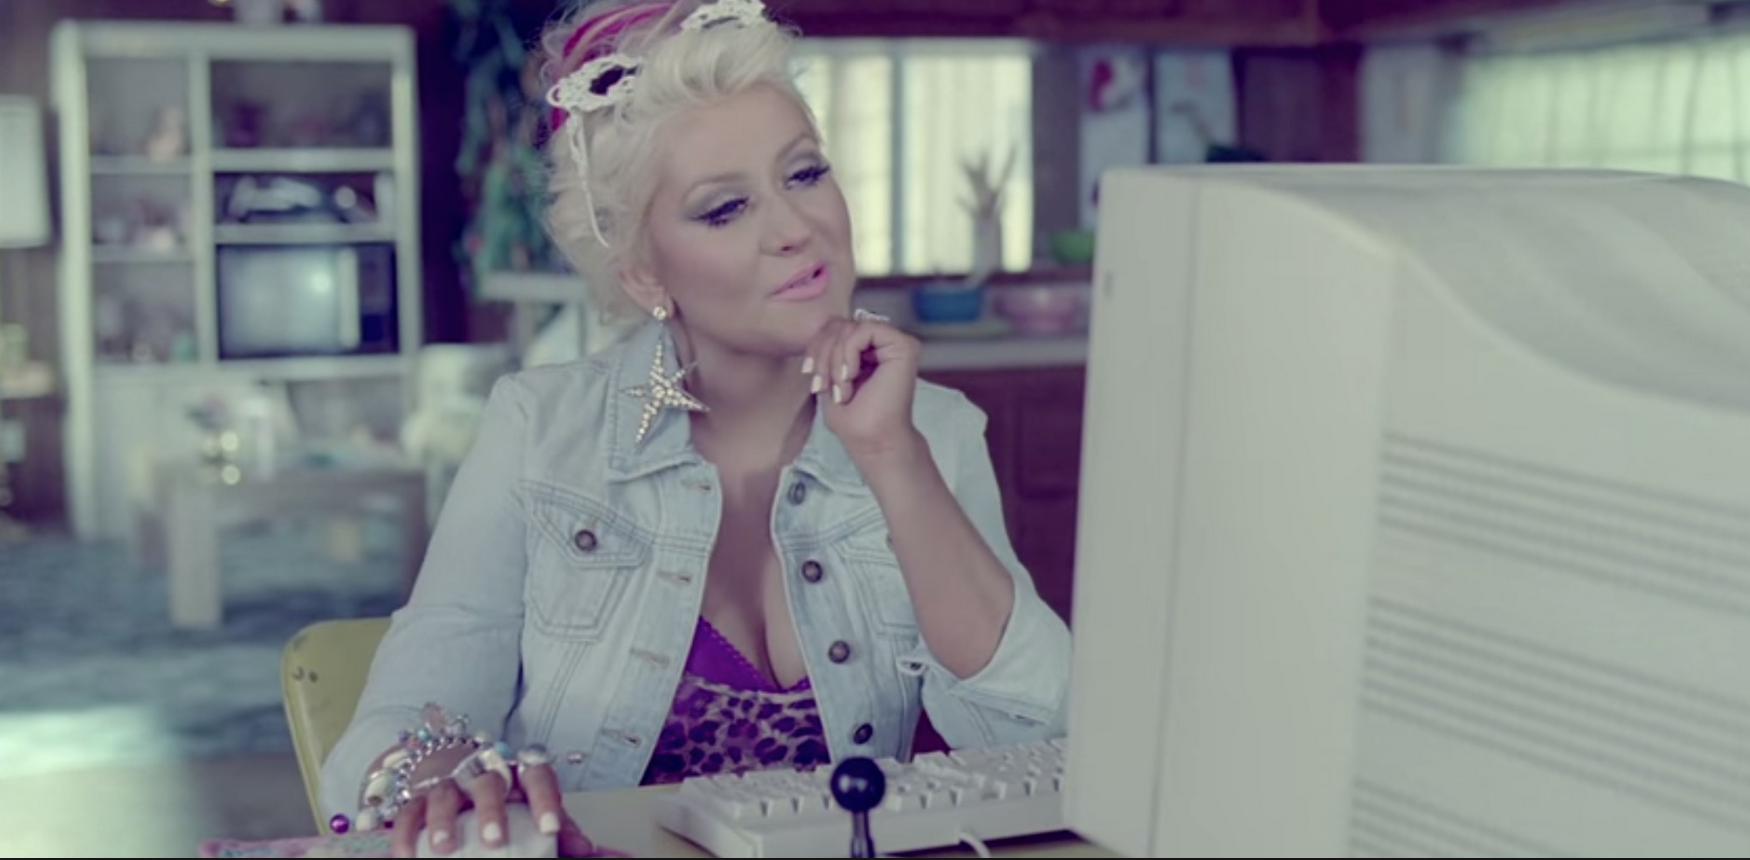 An image of Christina Aguilera on a computer